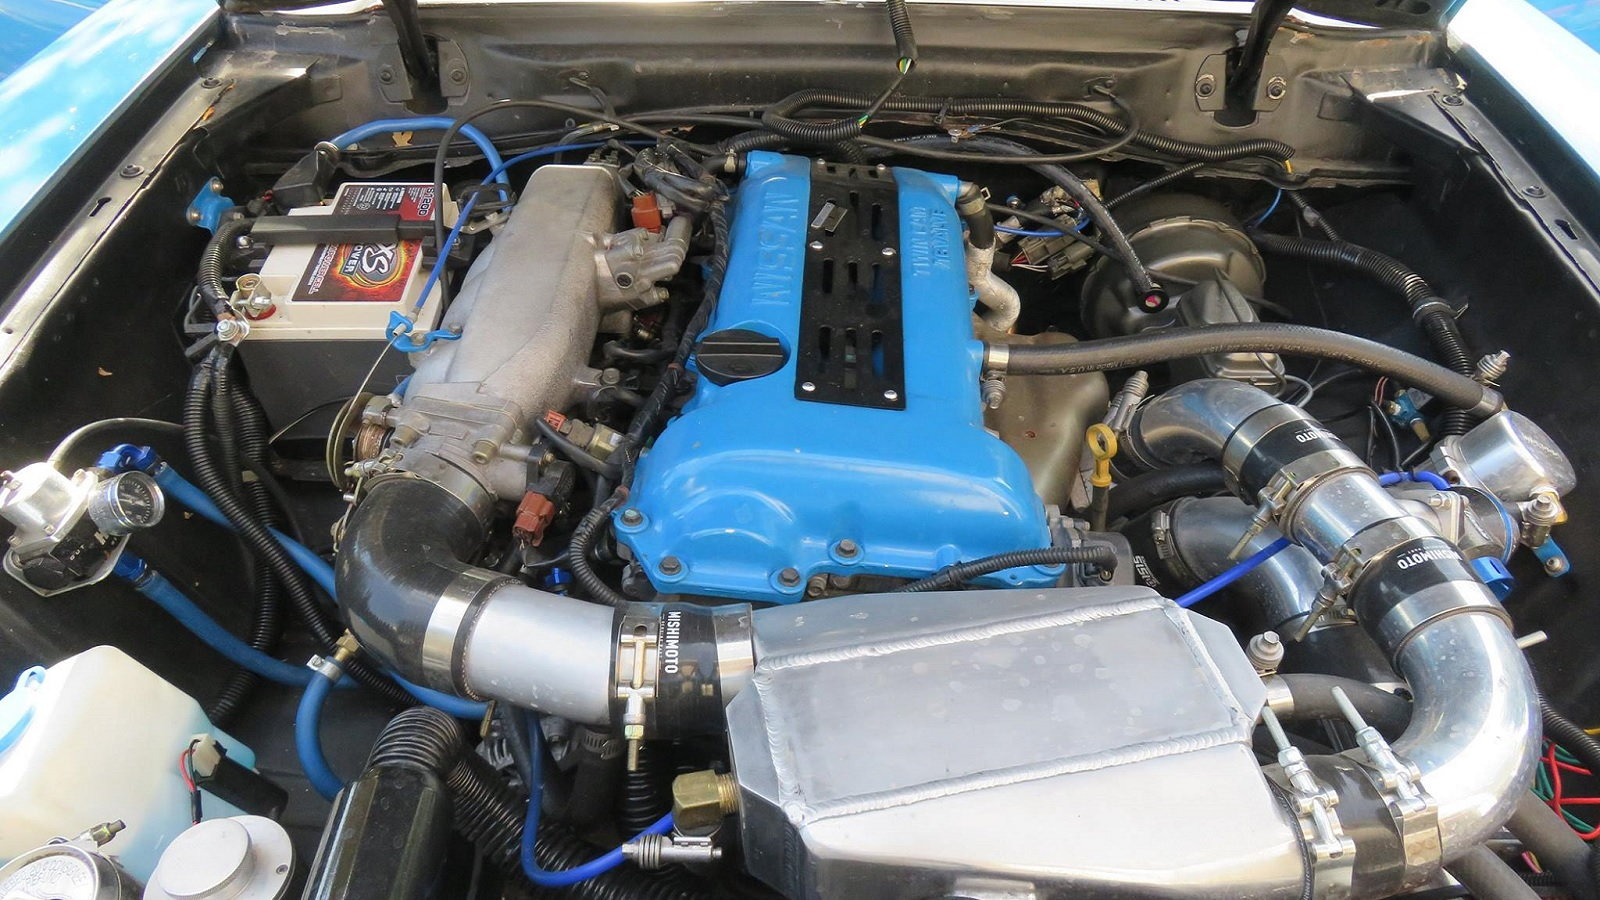 Upgrades to the engine